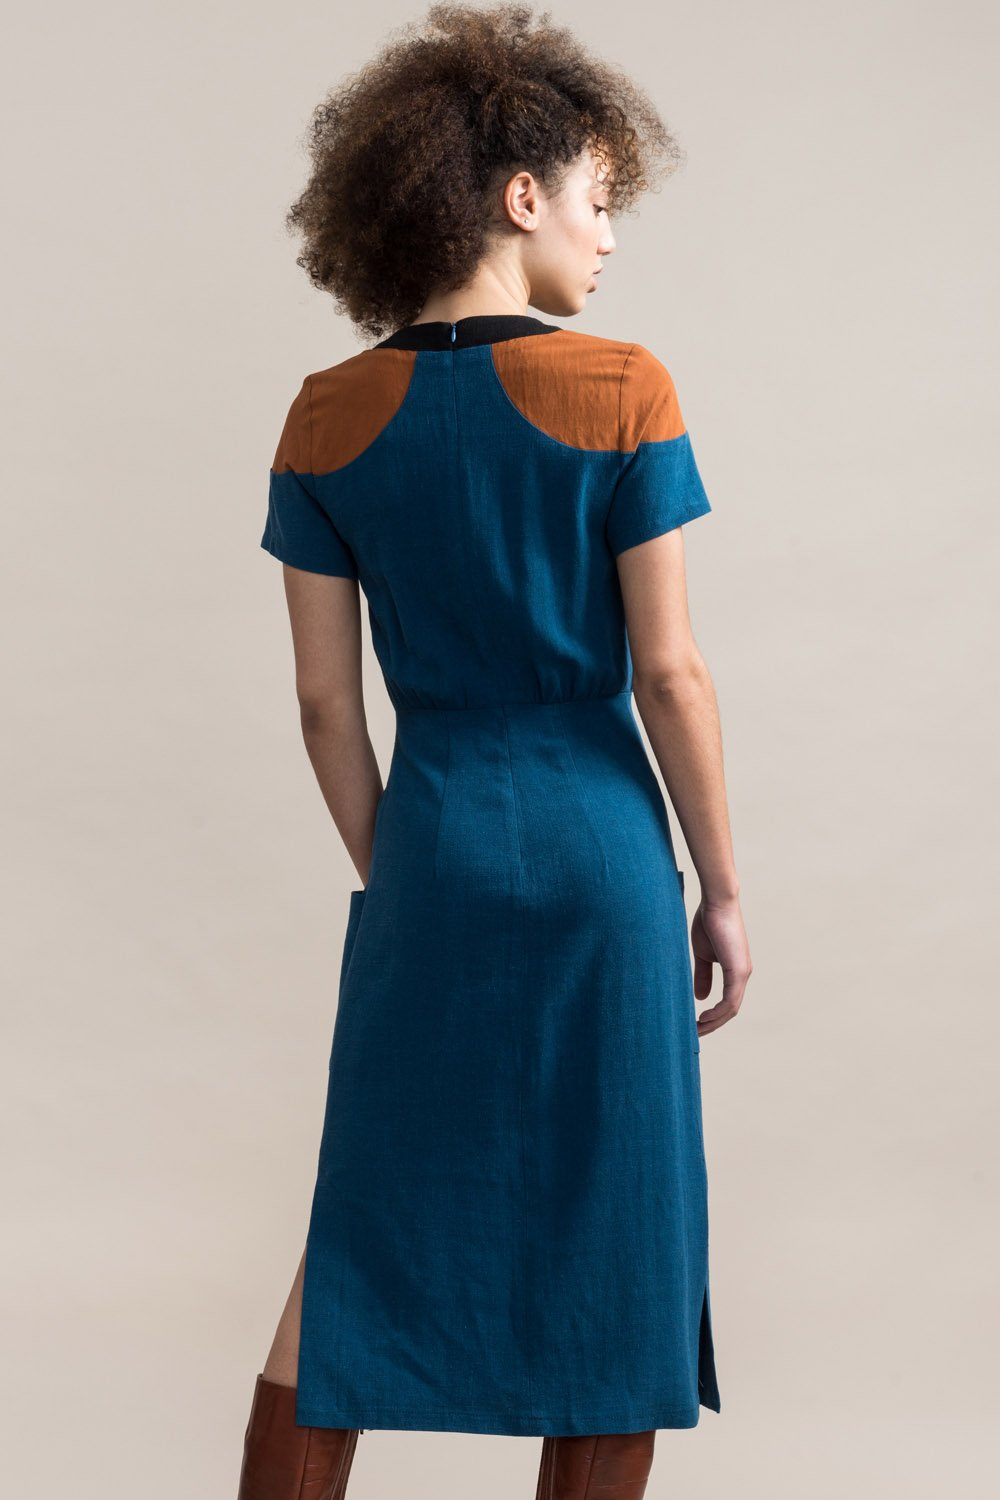 JENNIFER GLASGOW Cherish Dress in Teal FW2020/2021 (rear view, detail)